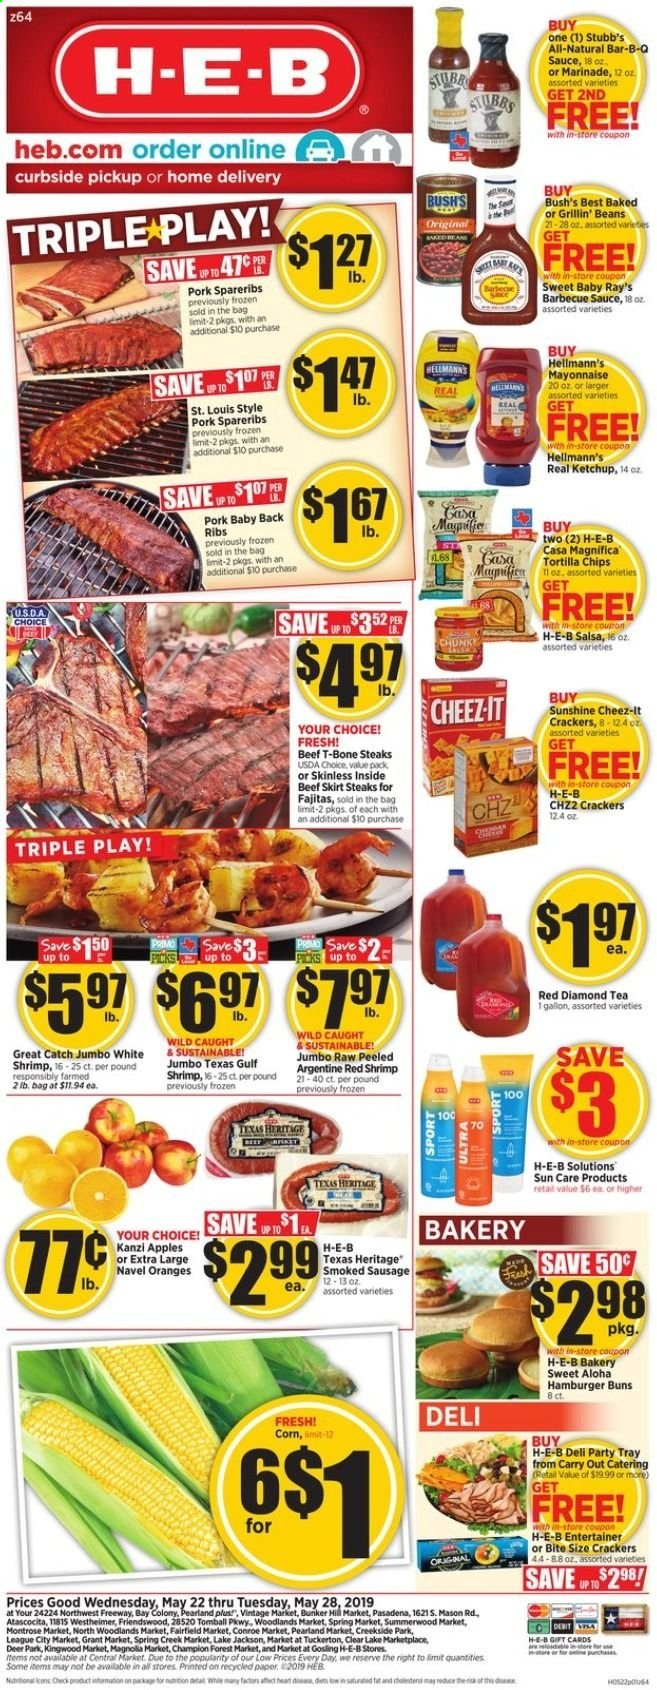 H-E-B Flyer  - 05.22.2019 - 05.28.2019. Page 1.